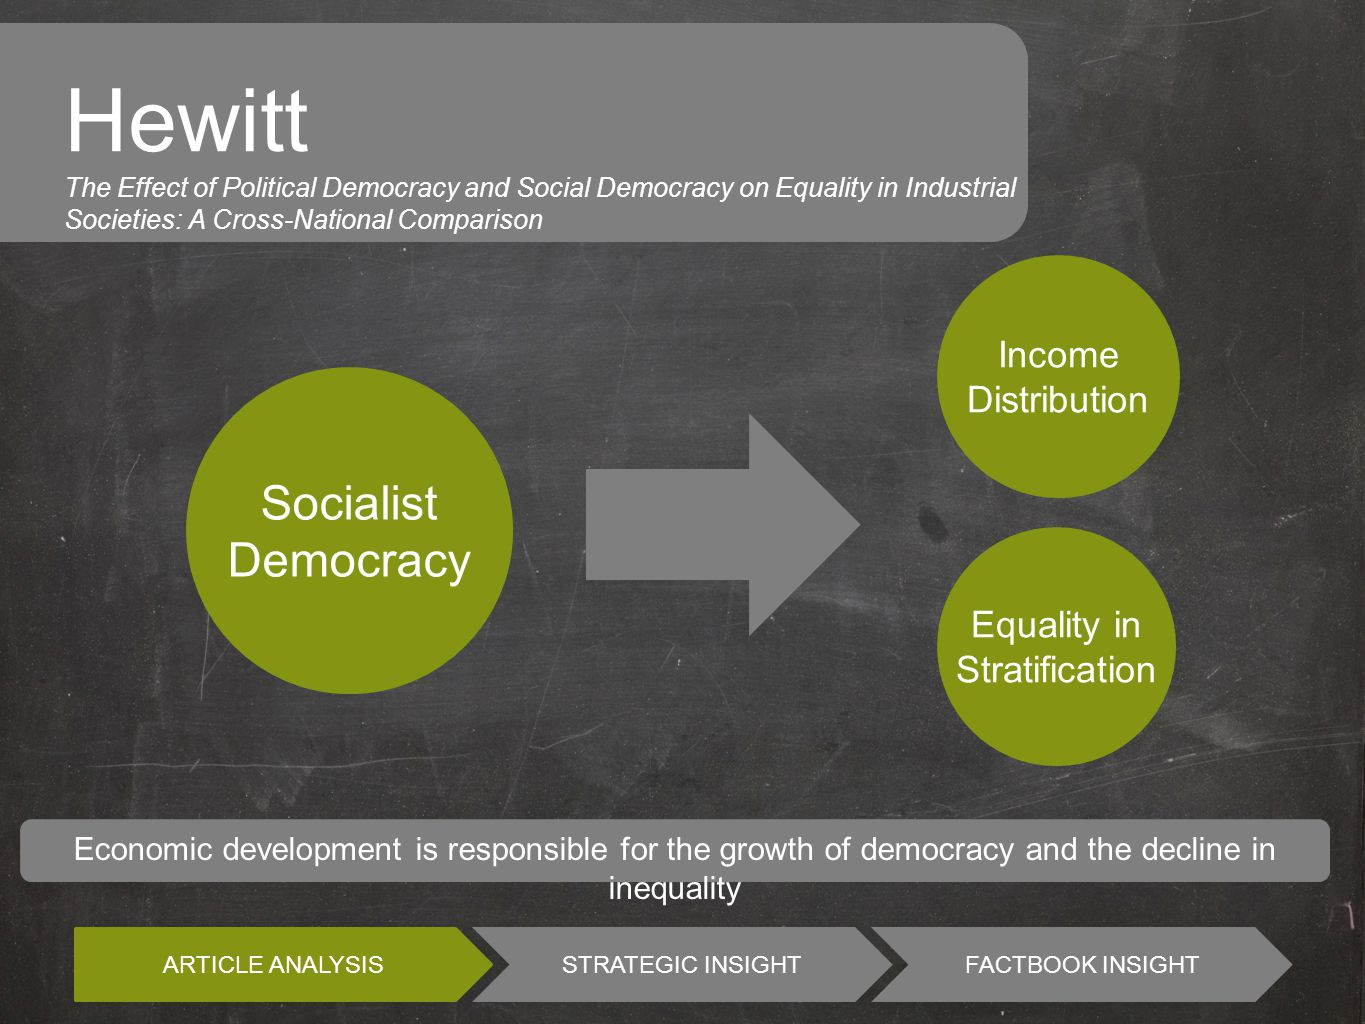 ARTICLE ANALYSIS STRATEGIC INSIGHTFACTBOOK INSIGHT Hewitt The Effect of Political Democracy and Social Democracy on Equality in Industrial Societies: A Cross-National Comparison Socialist Democracy Equality in Stratification Income Distribution Economic development is responsible for the growth of democracy and the decline in inequality